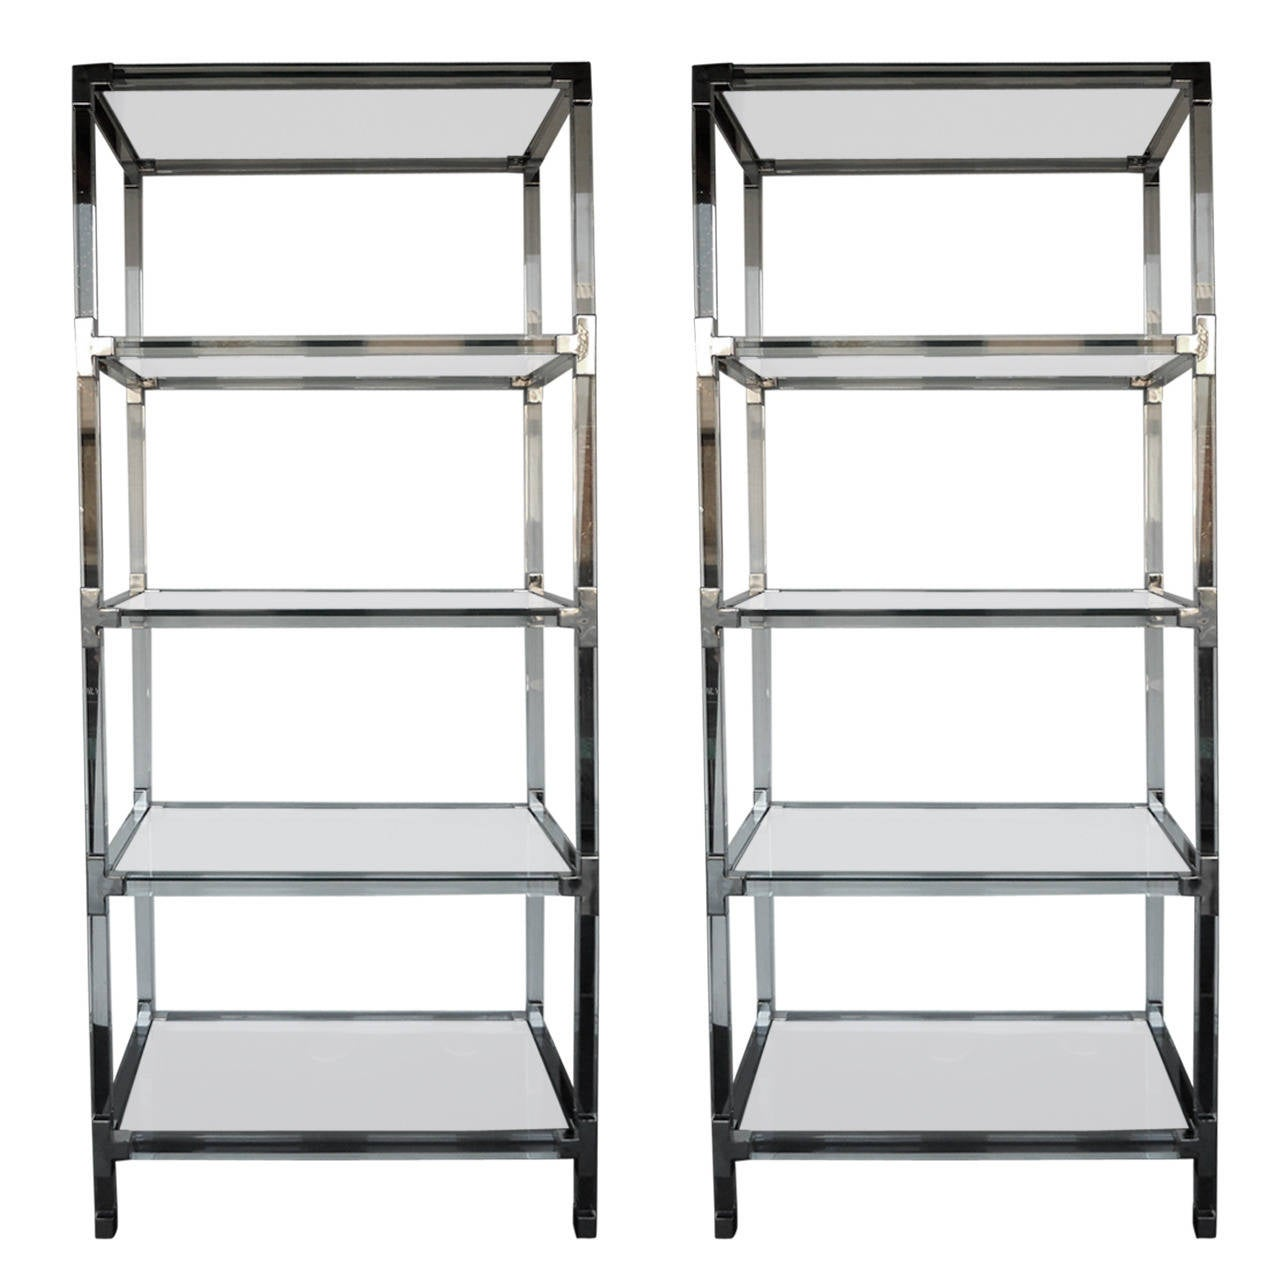 Grand pair of metric etageres in the style of charles hollis jones for sale a - Etagere grande hauteur ...